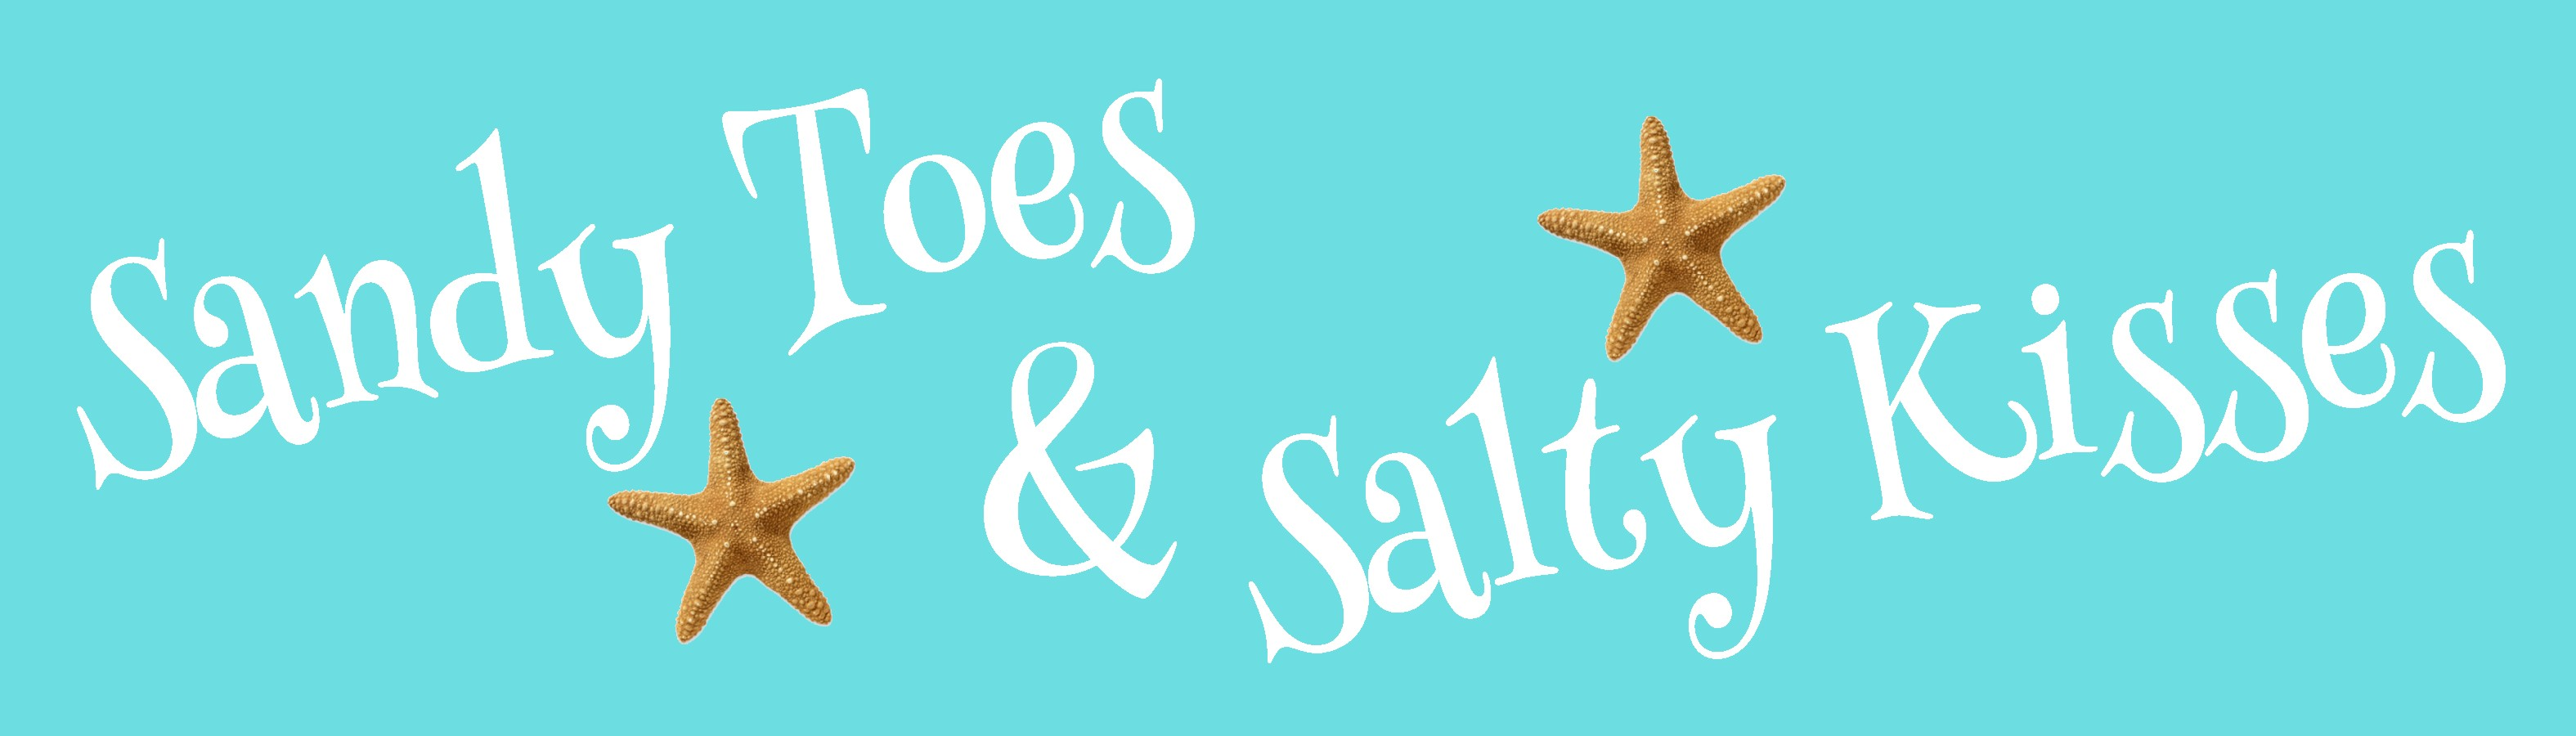 """SANDY TOES & SALTY KISSES 10.5"""" X 3"""" WOODEN BLOCK SIGN"""